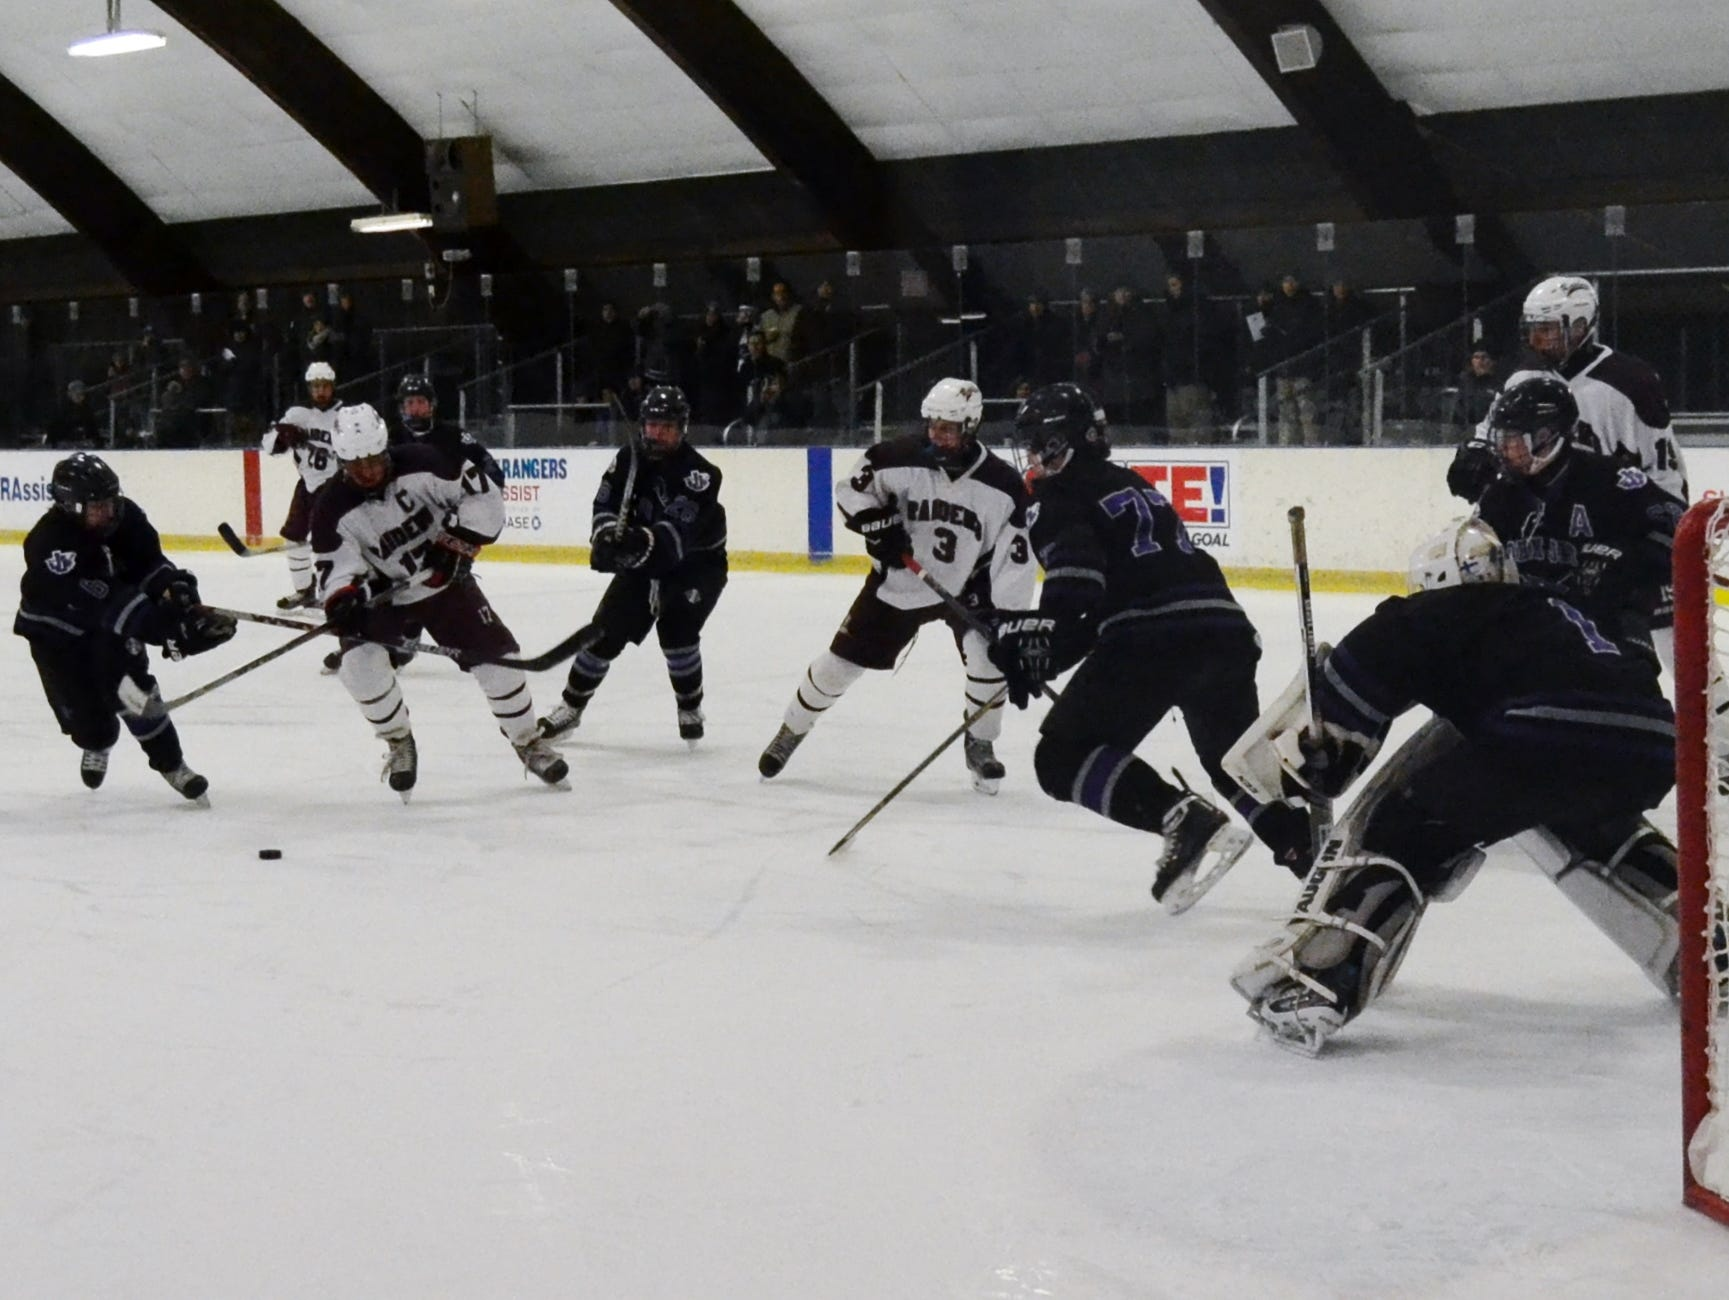 Scarsdale forward Stephen Nicholas makes a move to get inside the defense Friday at E.J. Murray Skating Center. He scored on the play and finished with a hat trick in the Raiders' 7-4 win over John Jay.